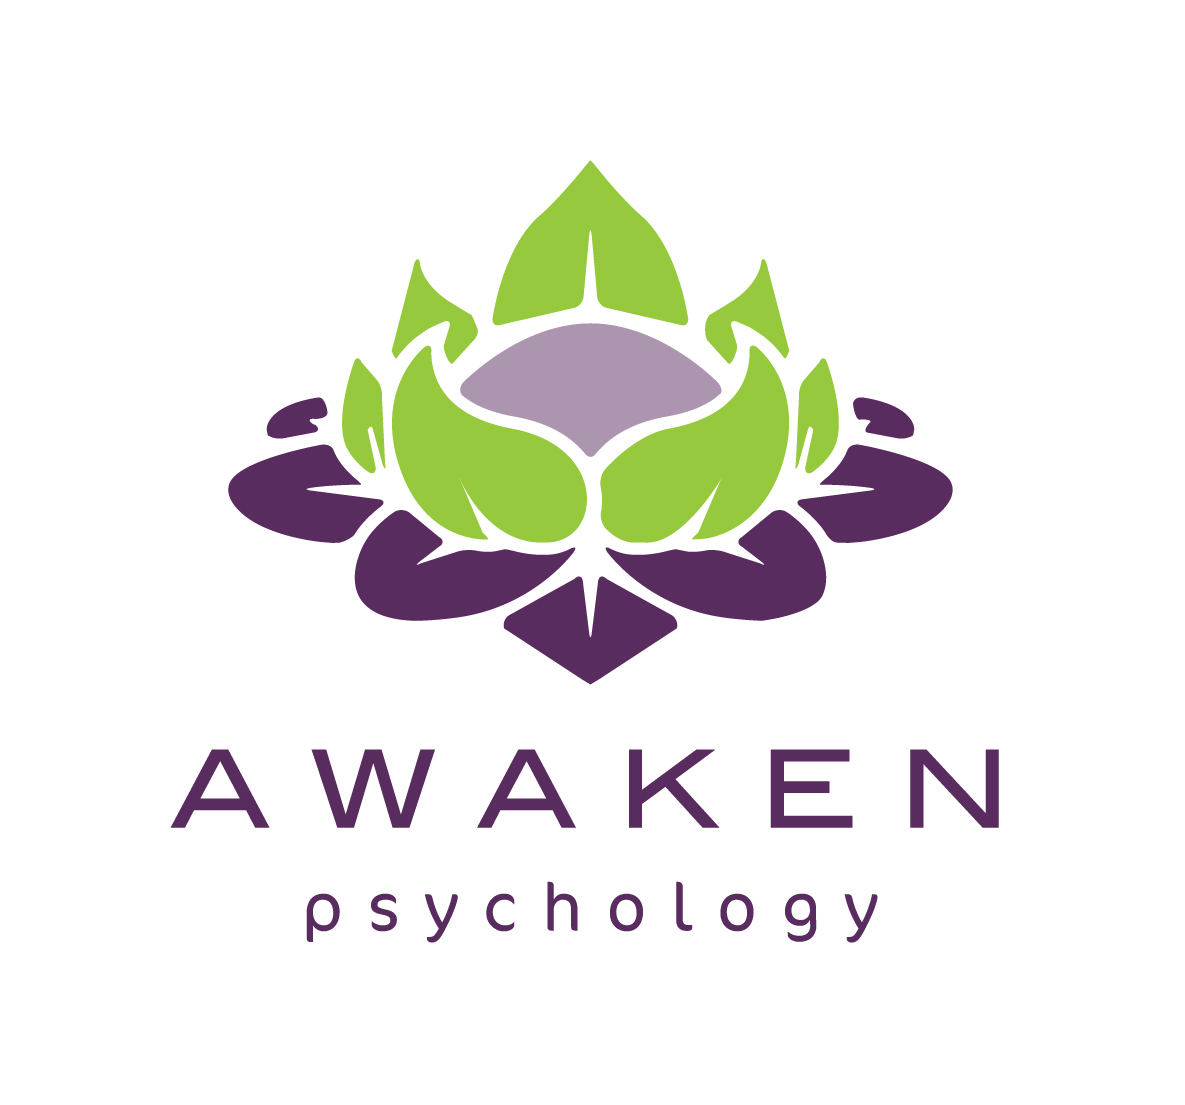 Awaken Psychology